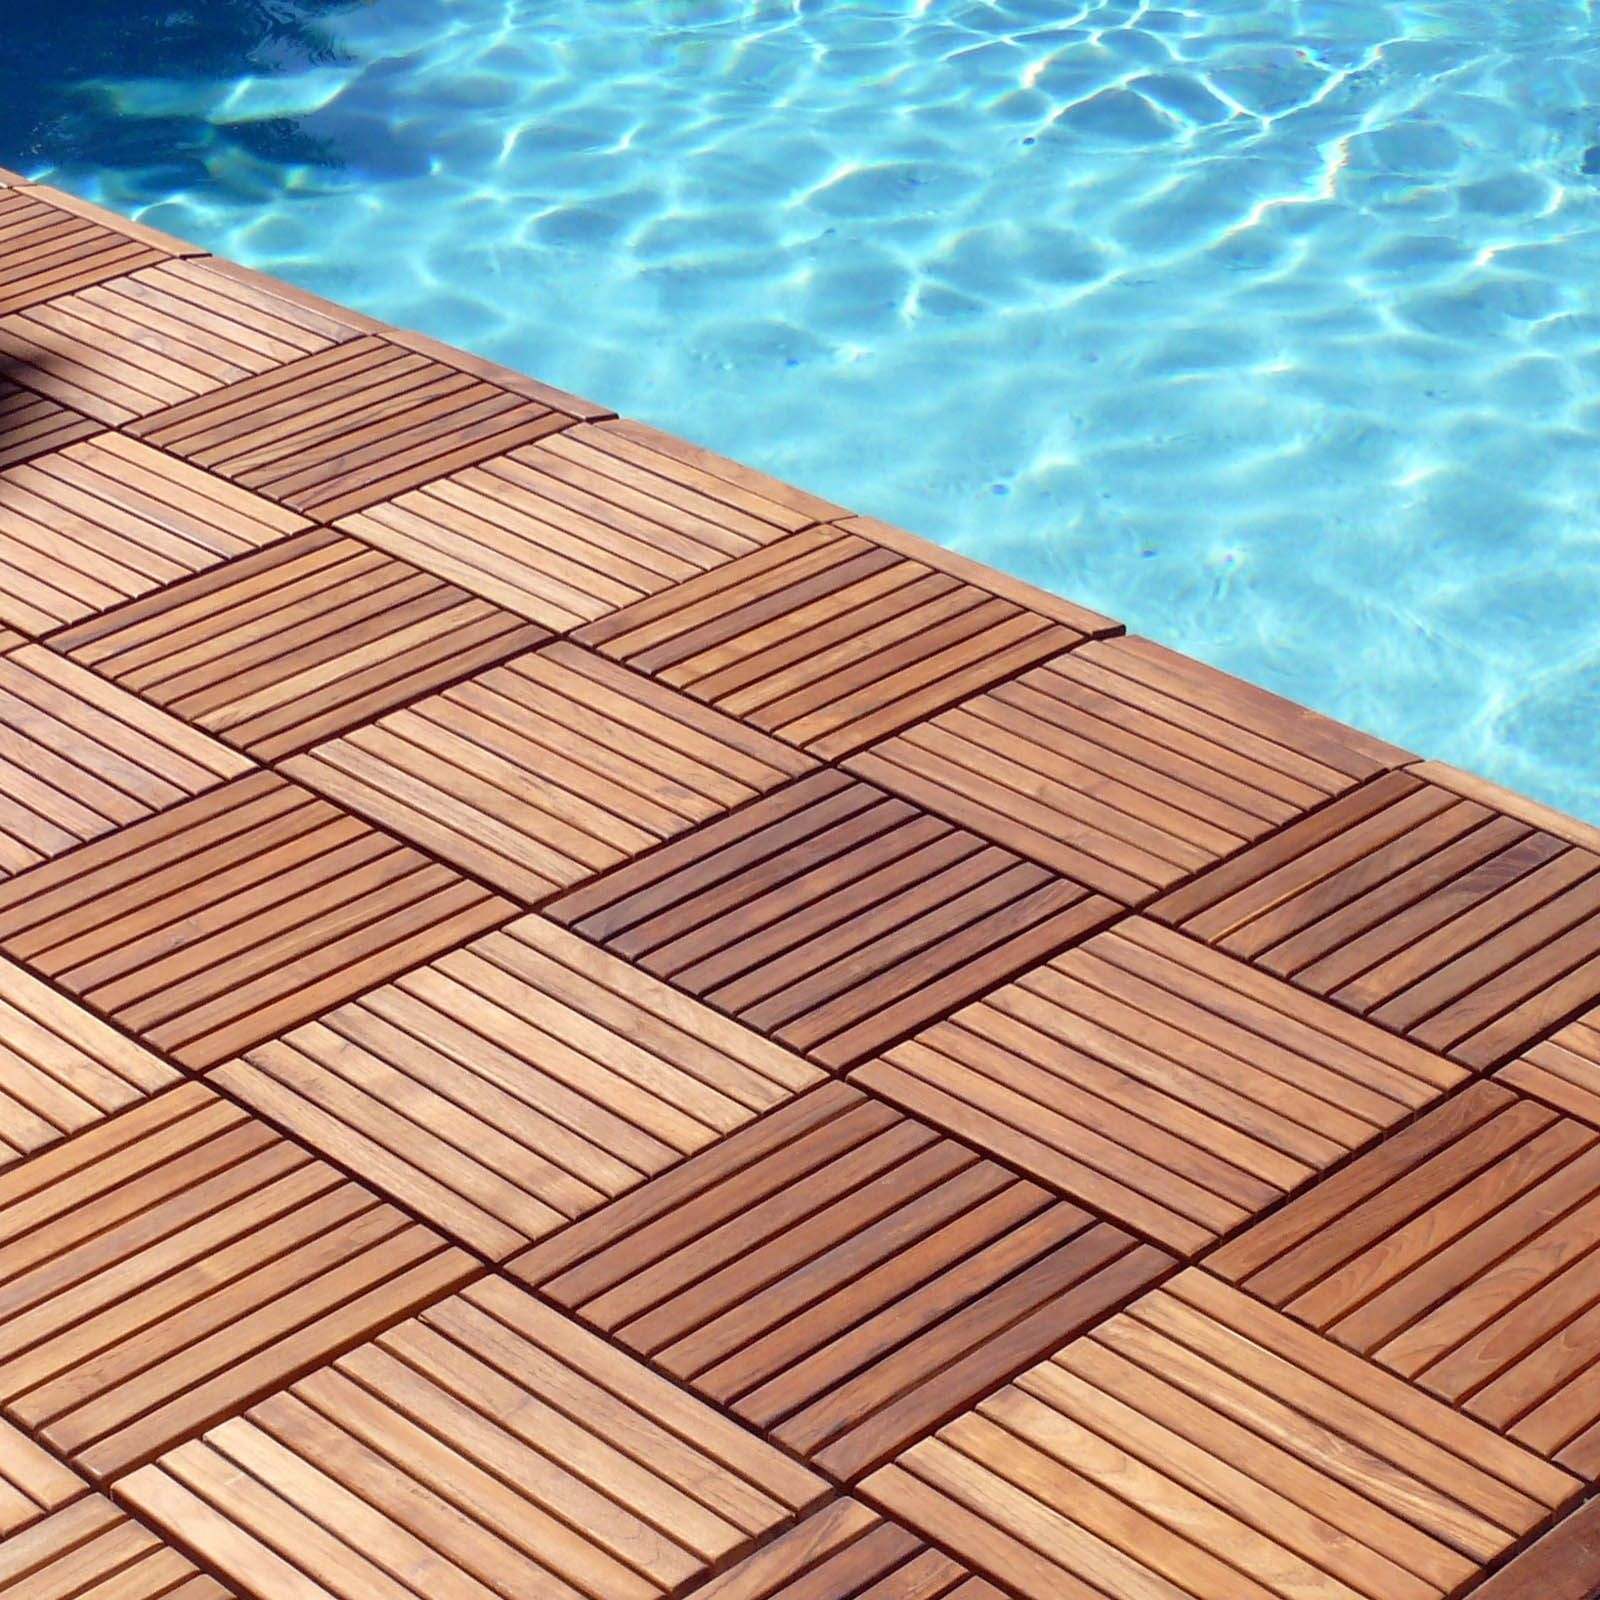 Outdoor interlocking plastic floor tiles httpnextsoft21 outdoor interlocking plastic floor tiles dailygadgetfo Gallery